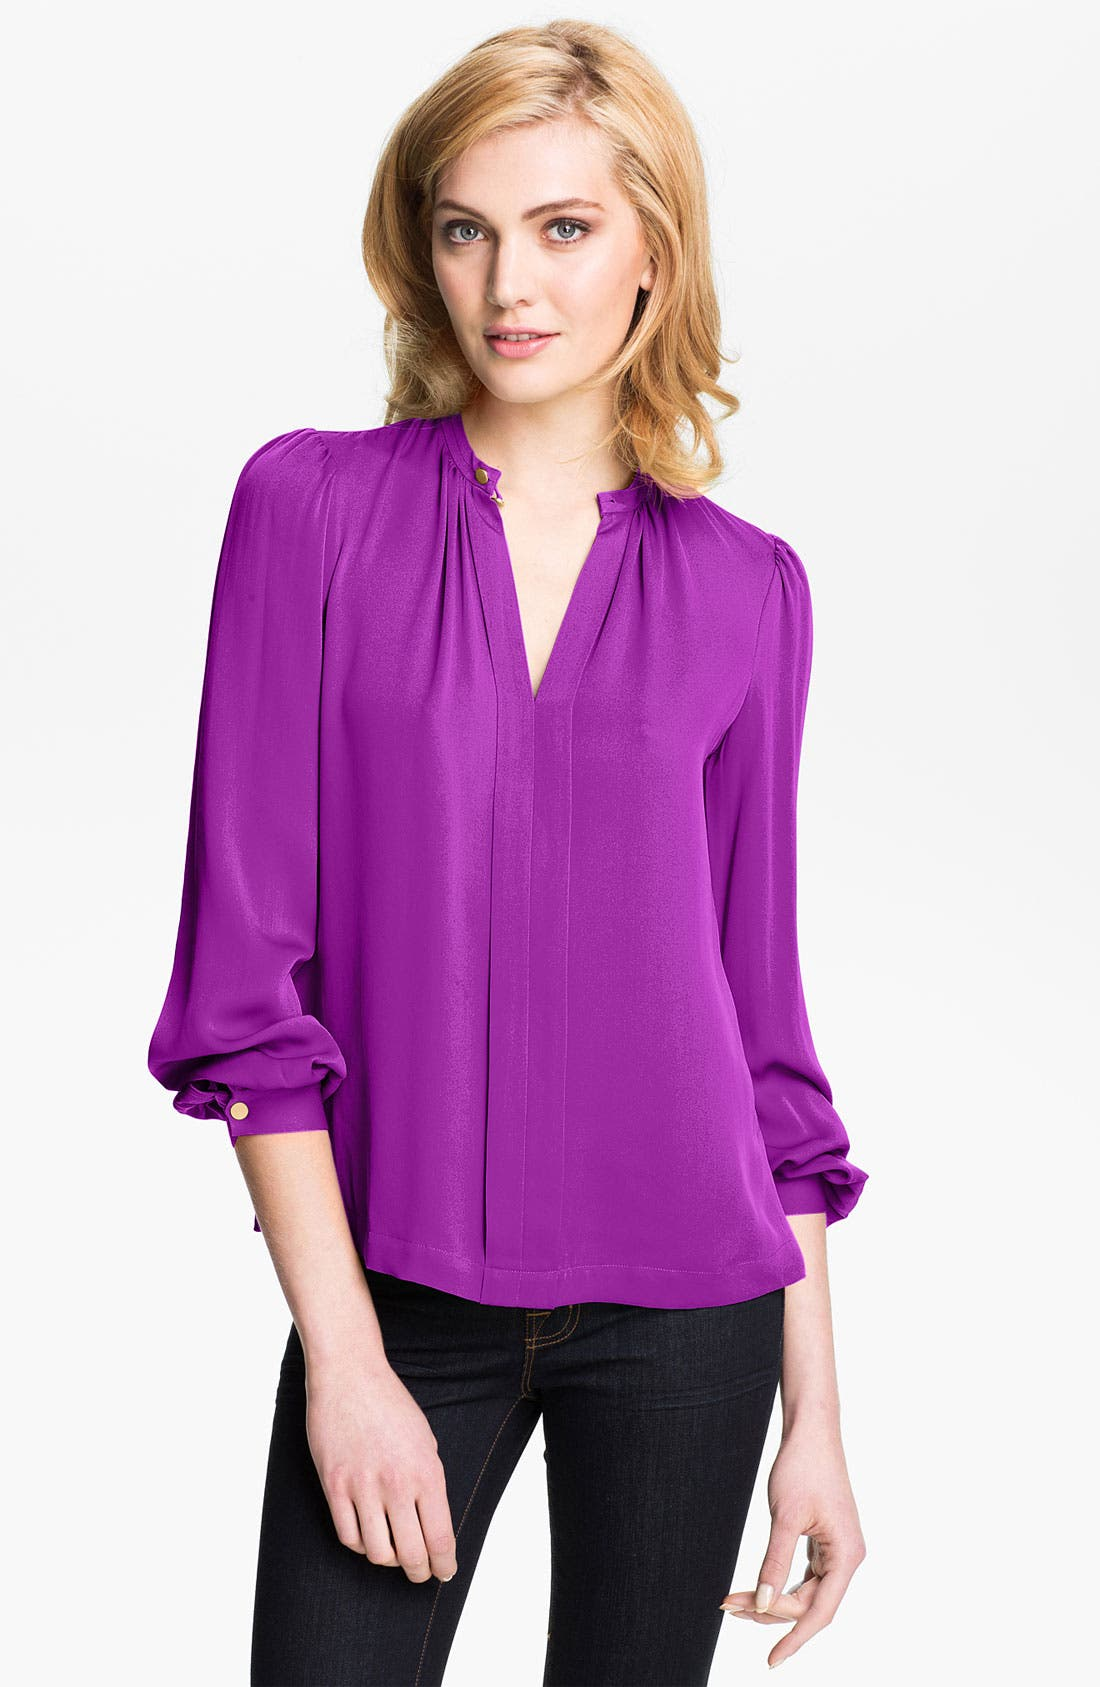 Alternate Image 1 Selected - Diane von Furstenberg 'Billow' Silk Blouse